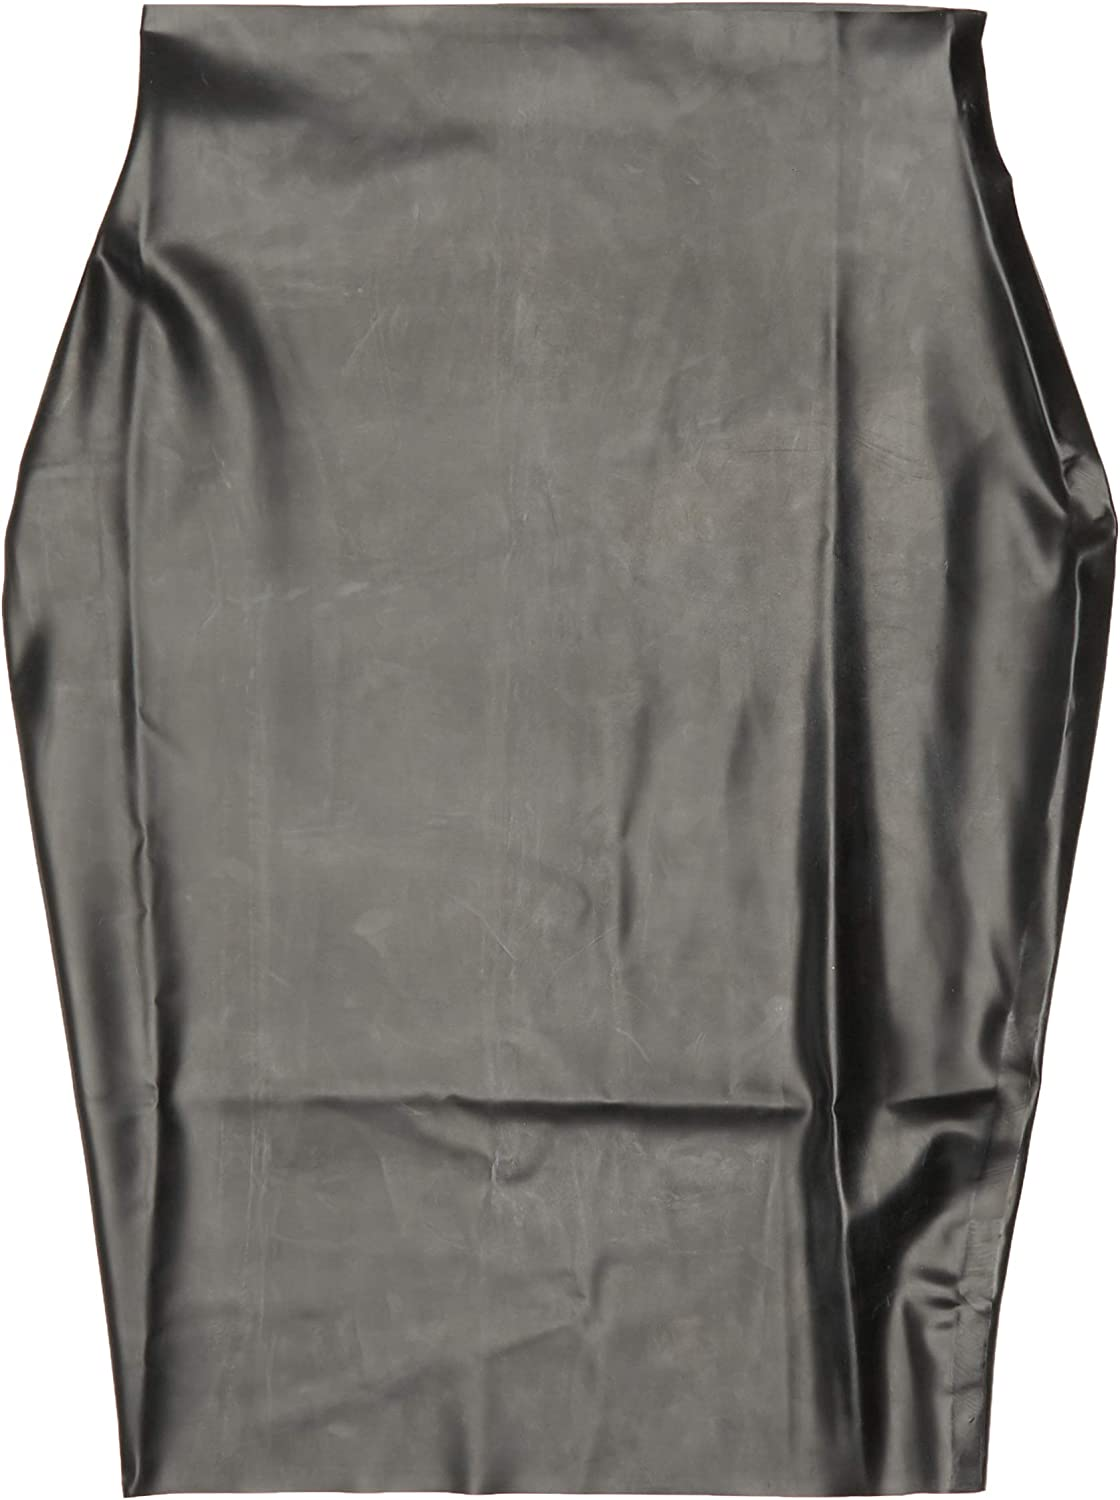 Skin Two New arrival Clothing Women's Skirt in UK 16 Discount is also underway XL Size Black Rubber